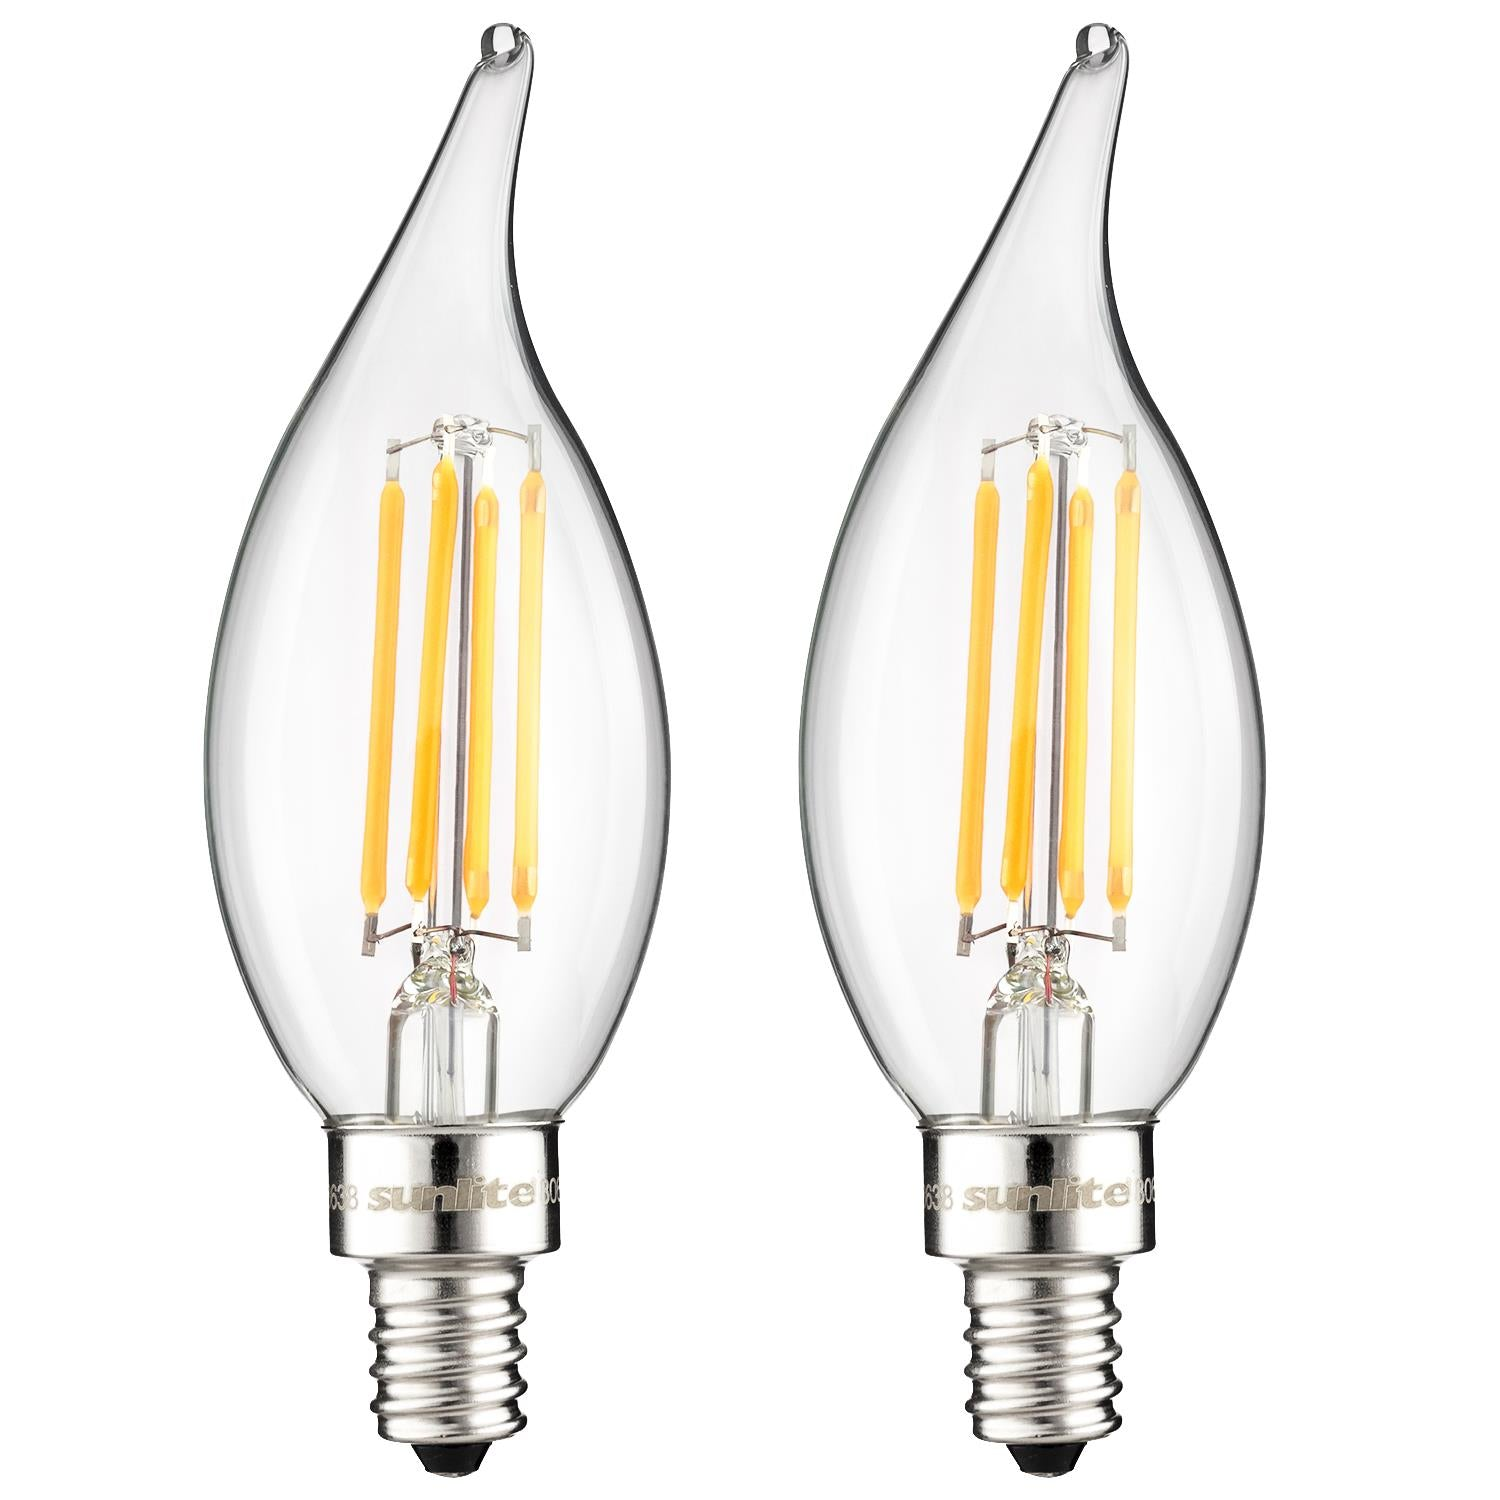 2Pk - SUNLITE LED Vintage Chandelier 4w Light Bulb 2700K Warm White